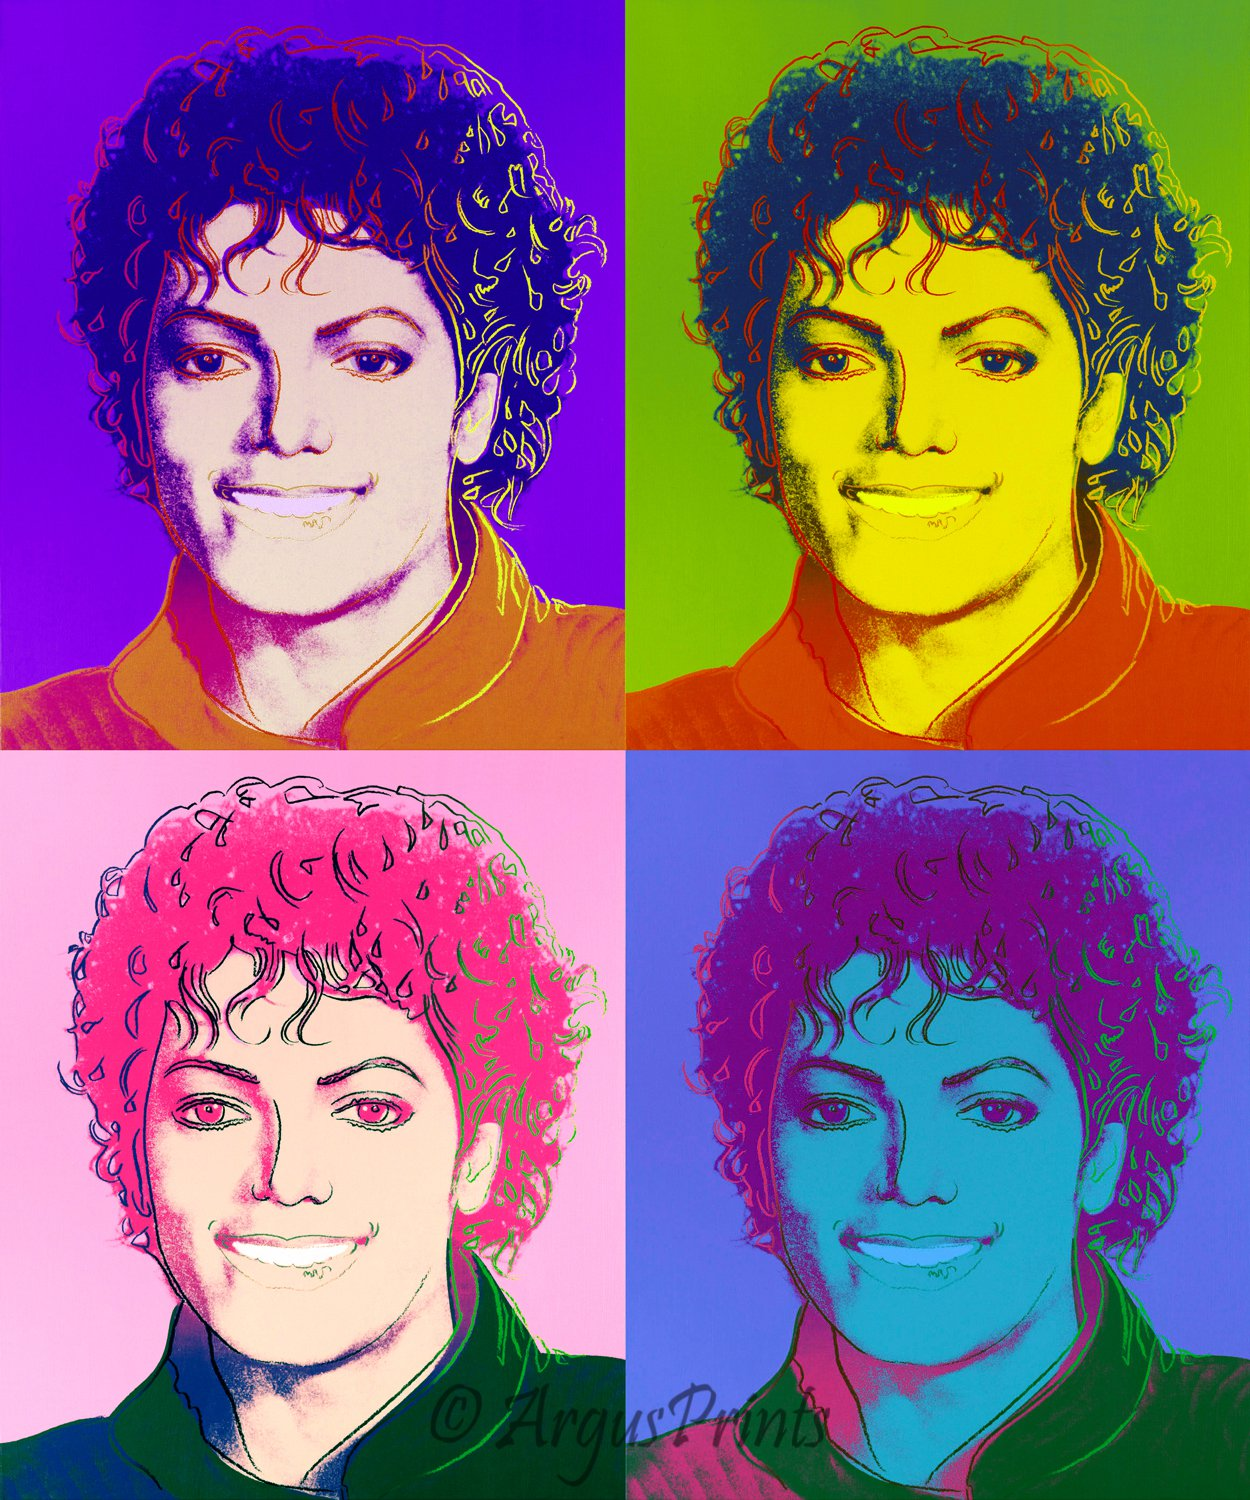 Michael Jackson 4-image Portrait Canvas Pop Art Print Inspired By Andy  Warhol